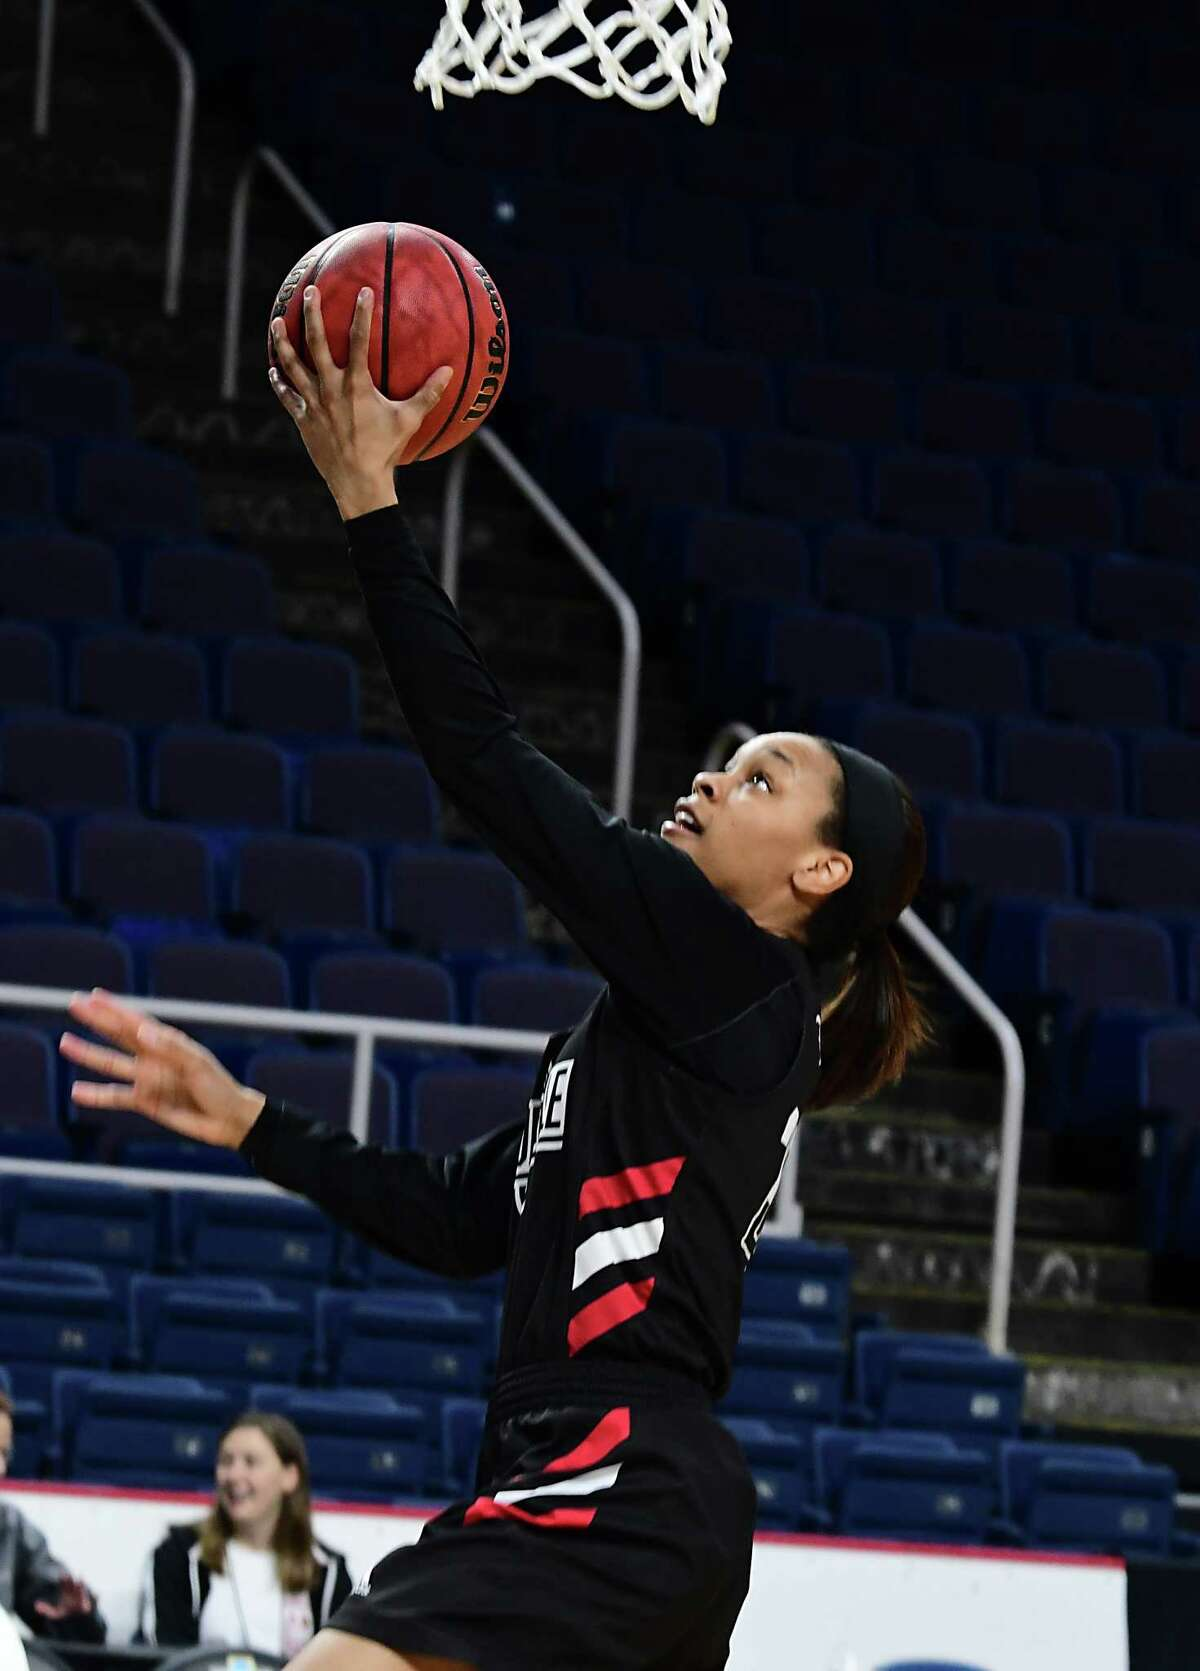 Louisville's Asia Durr makes a layup during practice for the Albany Regional of the NCAA Women's Basketball Championship at the Times Union Center on Thursday, March 28, 2019 in Albany, N.Y. Louisville will be taking on Oregon State on Friday. (Lori Van Buren/Times Union)